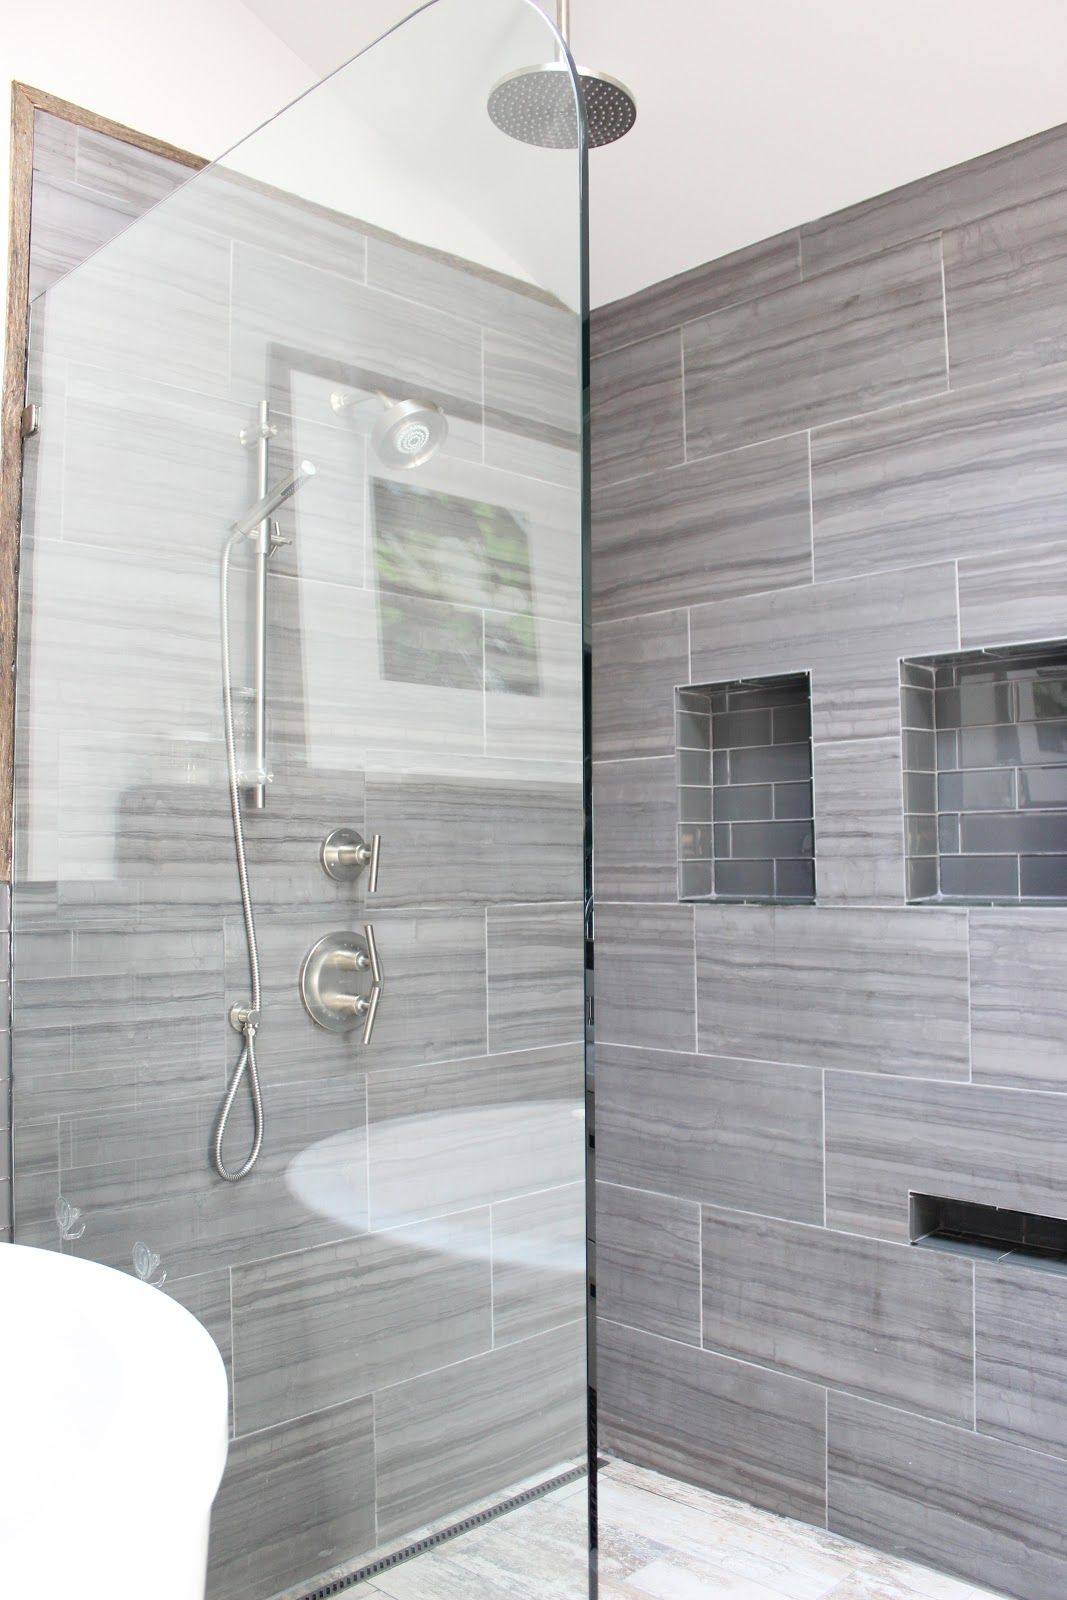 12x24 tile on pinterest vertical shower tile porcelain floor and shower niche - Bathroom floor tiles design ...